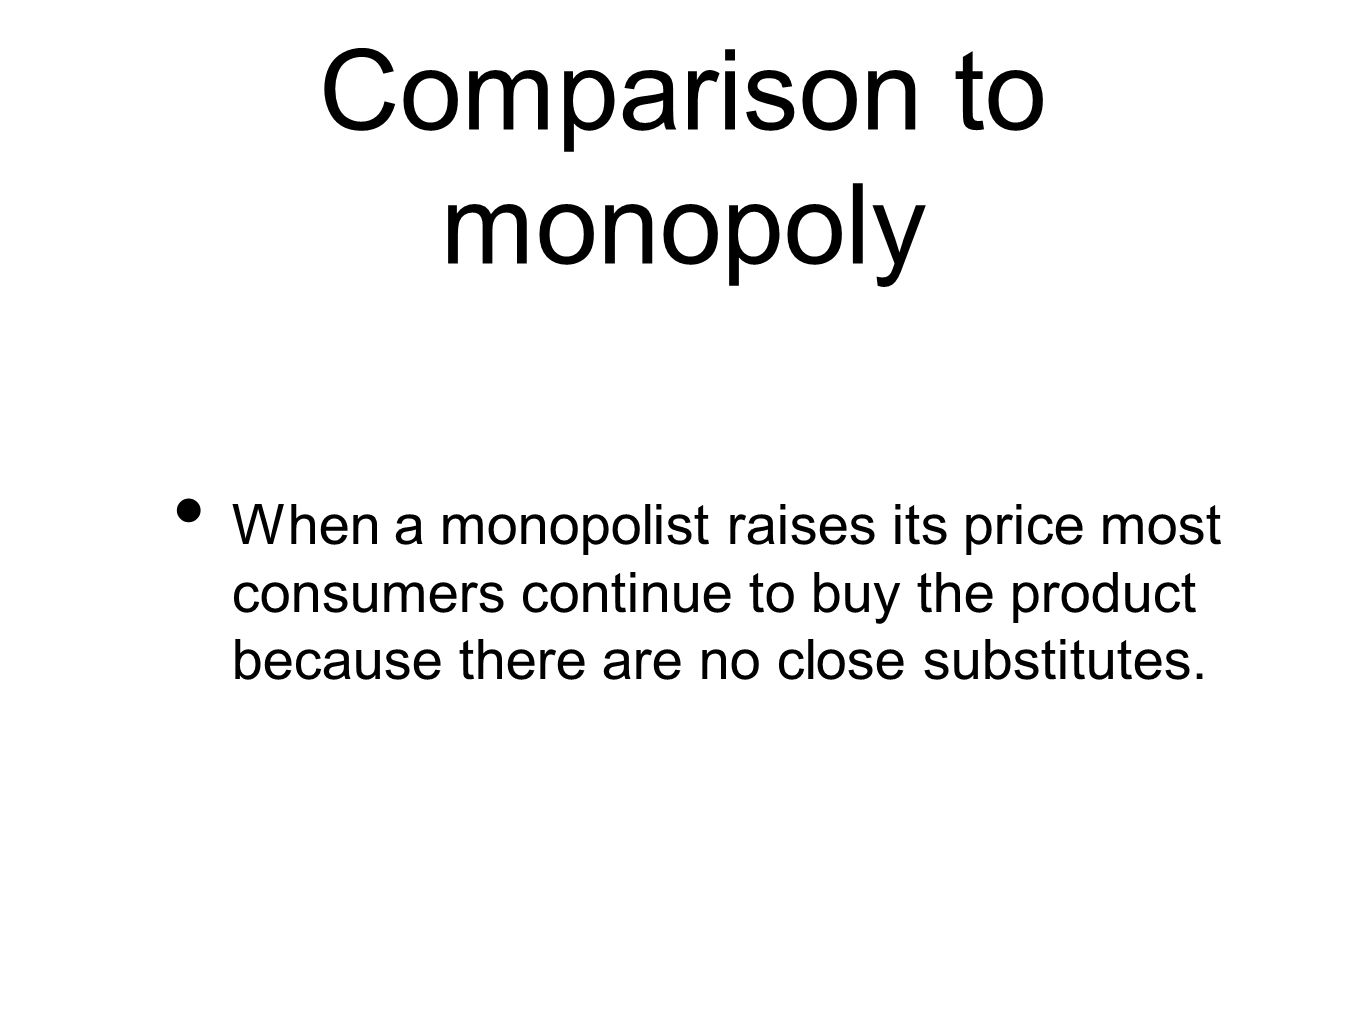 Comparison to monopoly When a monopolist raises its price most consumers continue to buy the product because there are no close substitutes.